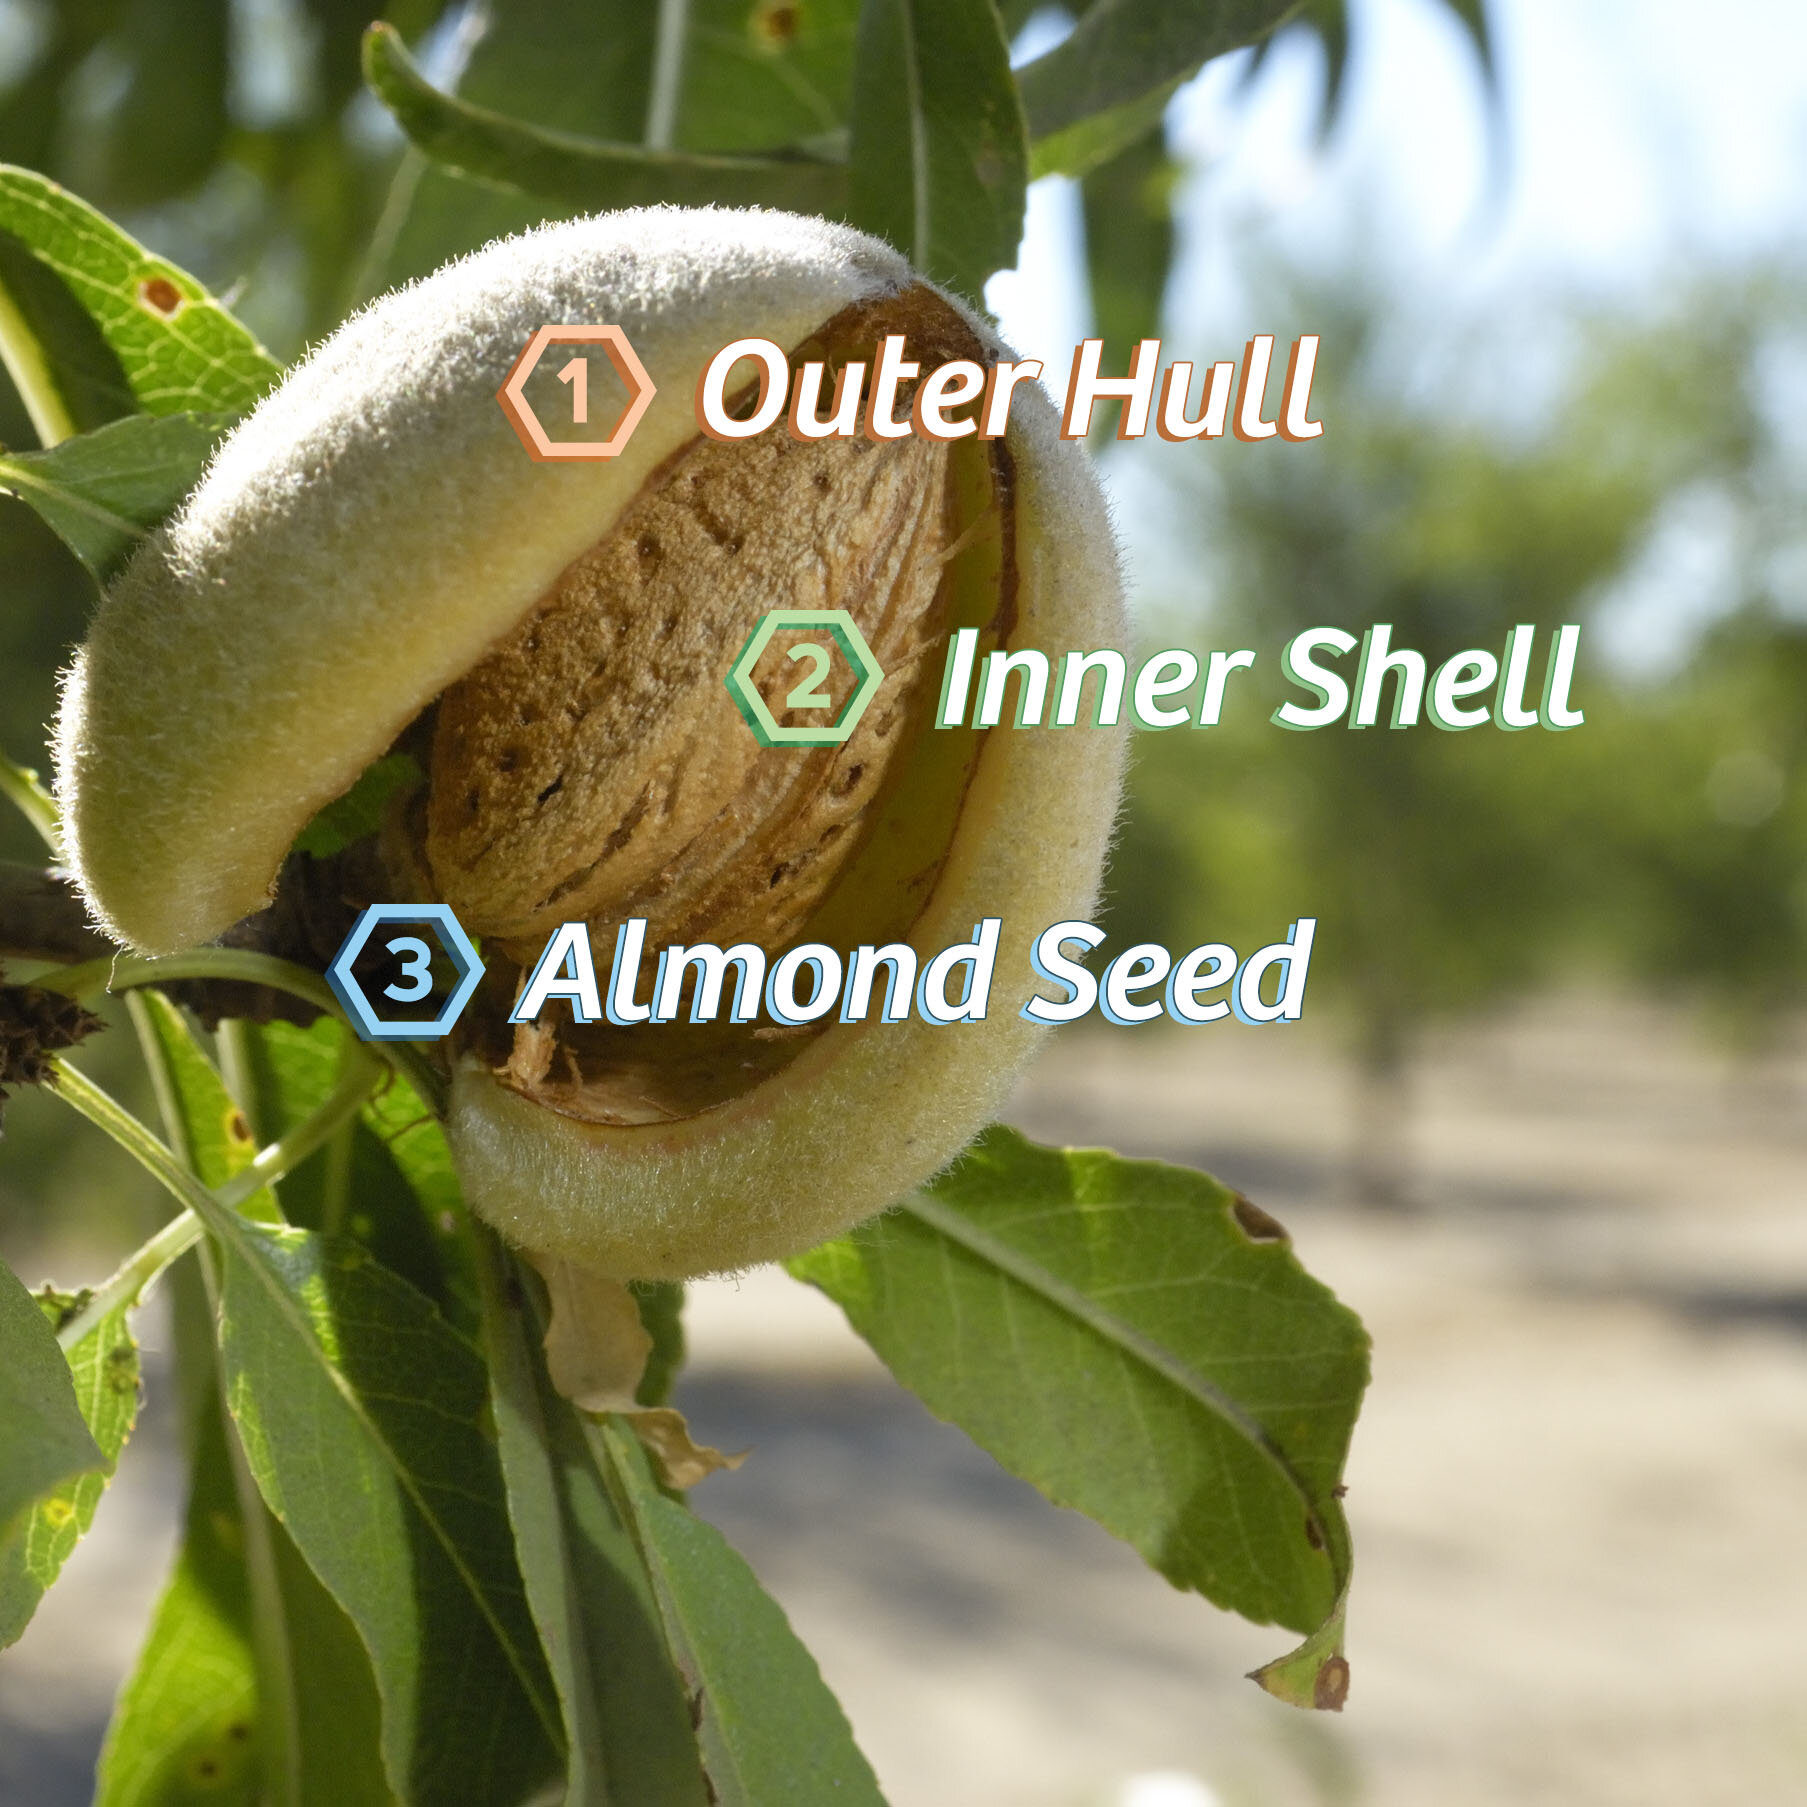 Origin Almond is proud to useZero-Waste Almonds - meaning every part of the harvested almond fruit is used or upcycled:1. Soft Outer Hull is used as an alternative food source for cattle & livestock.2. Hard Inner Shell is used to power clean-burning bio fuel.3. We use the entire Almond Seed when making our almond juice productsThis results in Zero Food Waste and a sustainable approach to us protecting our planet while combating the excess sugar epidemic!